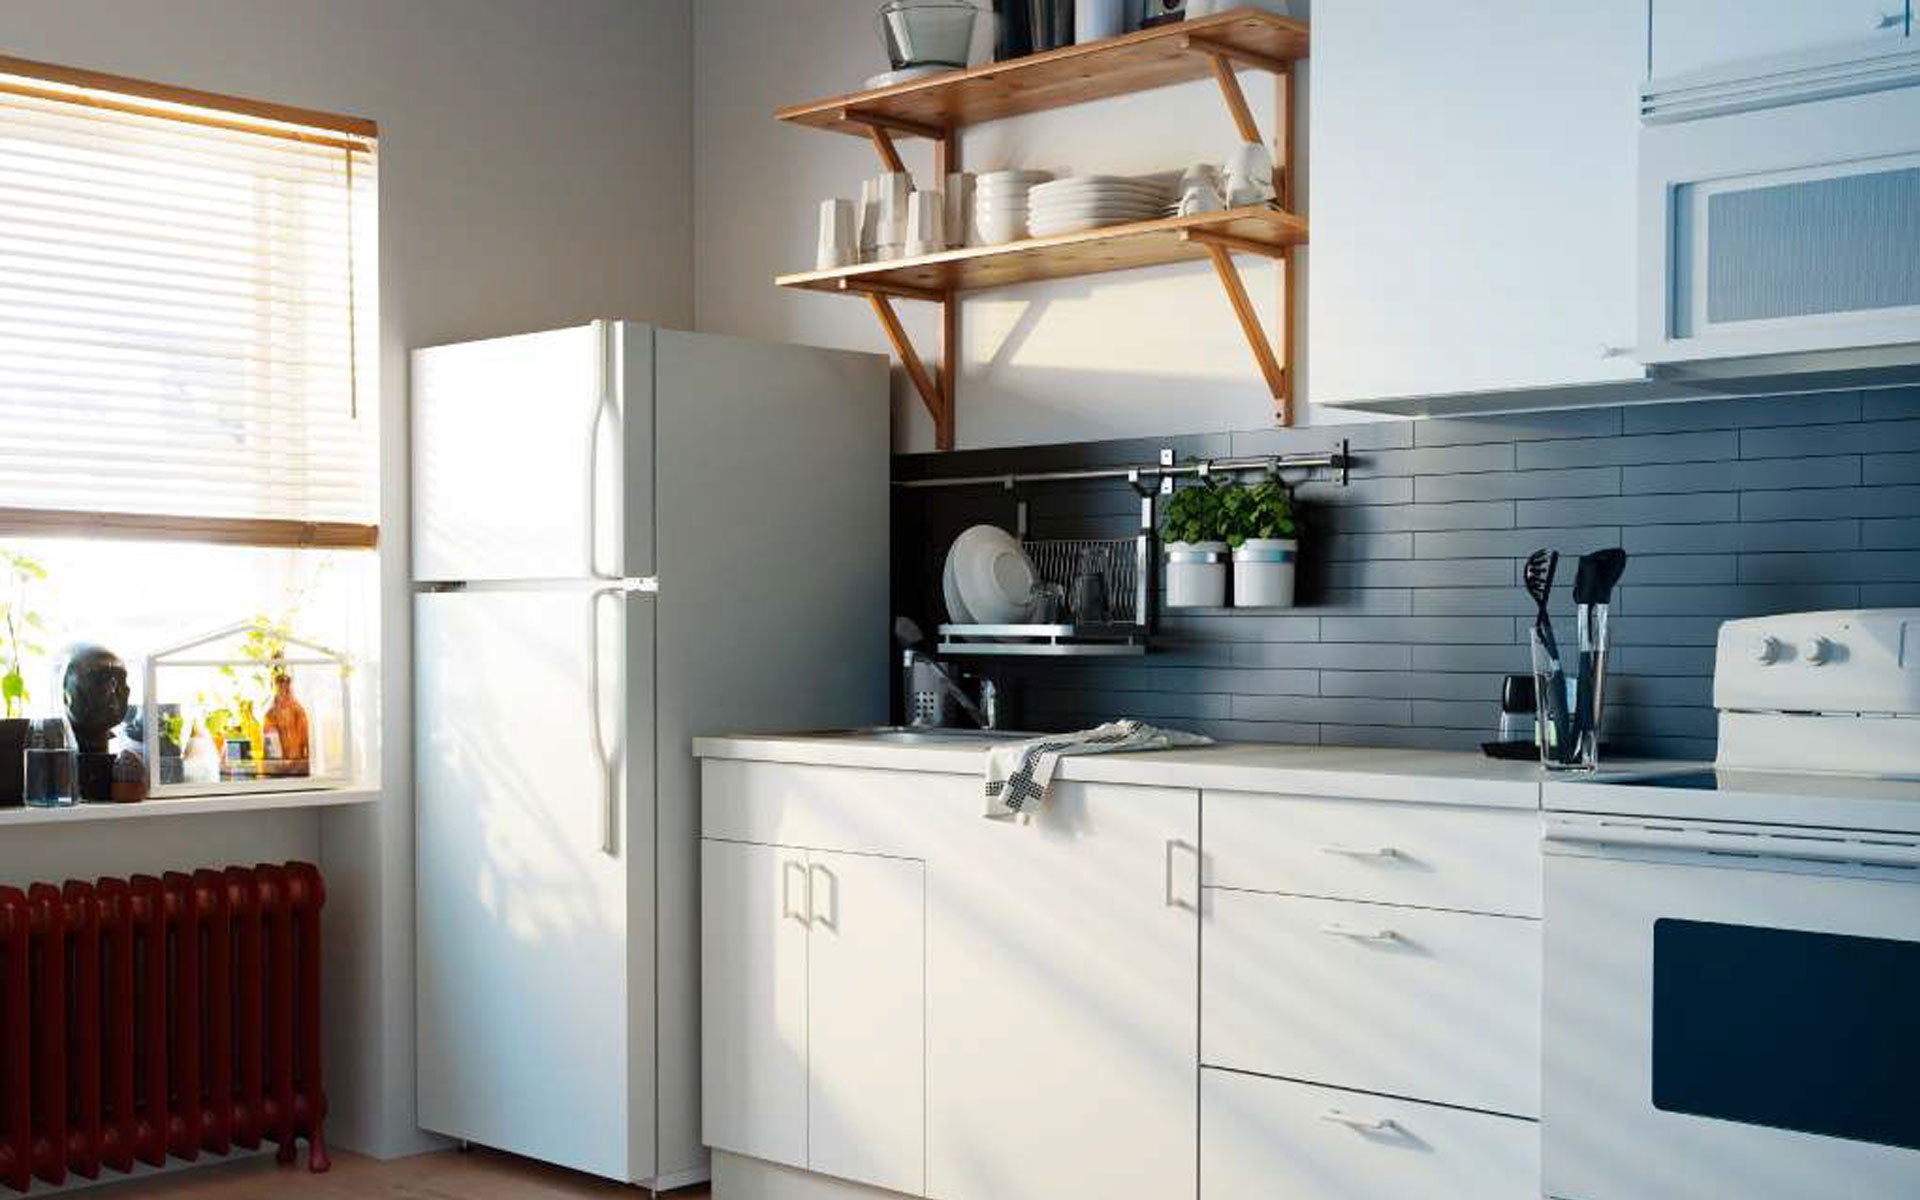 Inspirations-Modern-Kitchen-Storage-For-Your-Ideas-Decorations-Kitchen-Decorations-Exciting-Wooden-Floating-Shelves-As-Glass-Storage-At-White-Wall-Kitchen-Painted